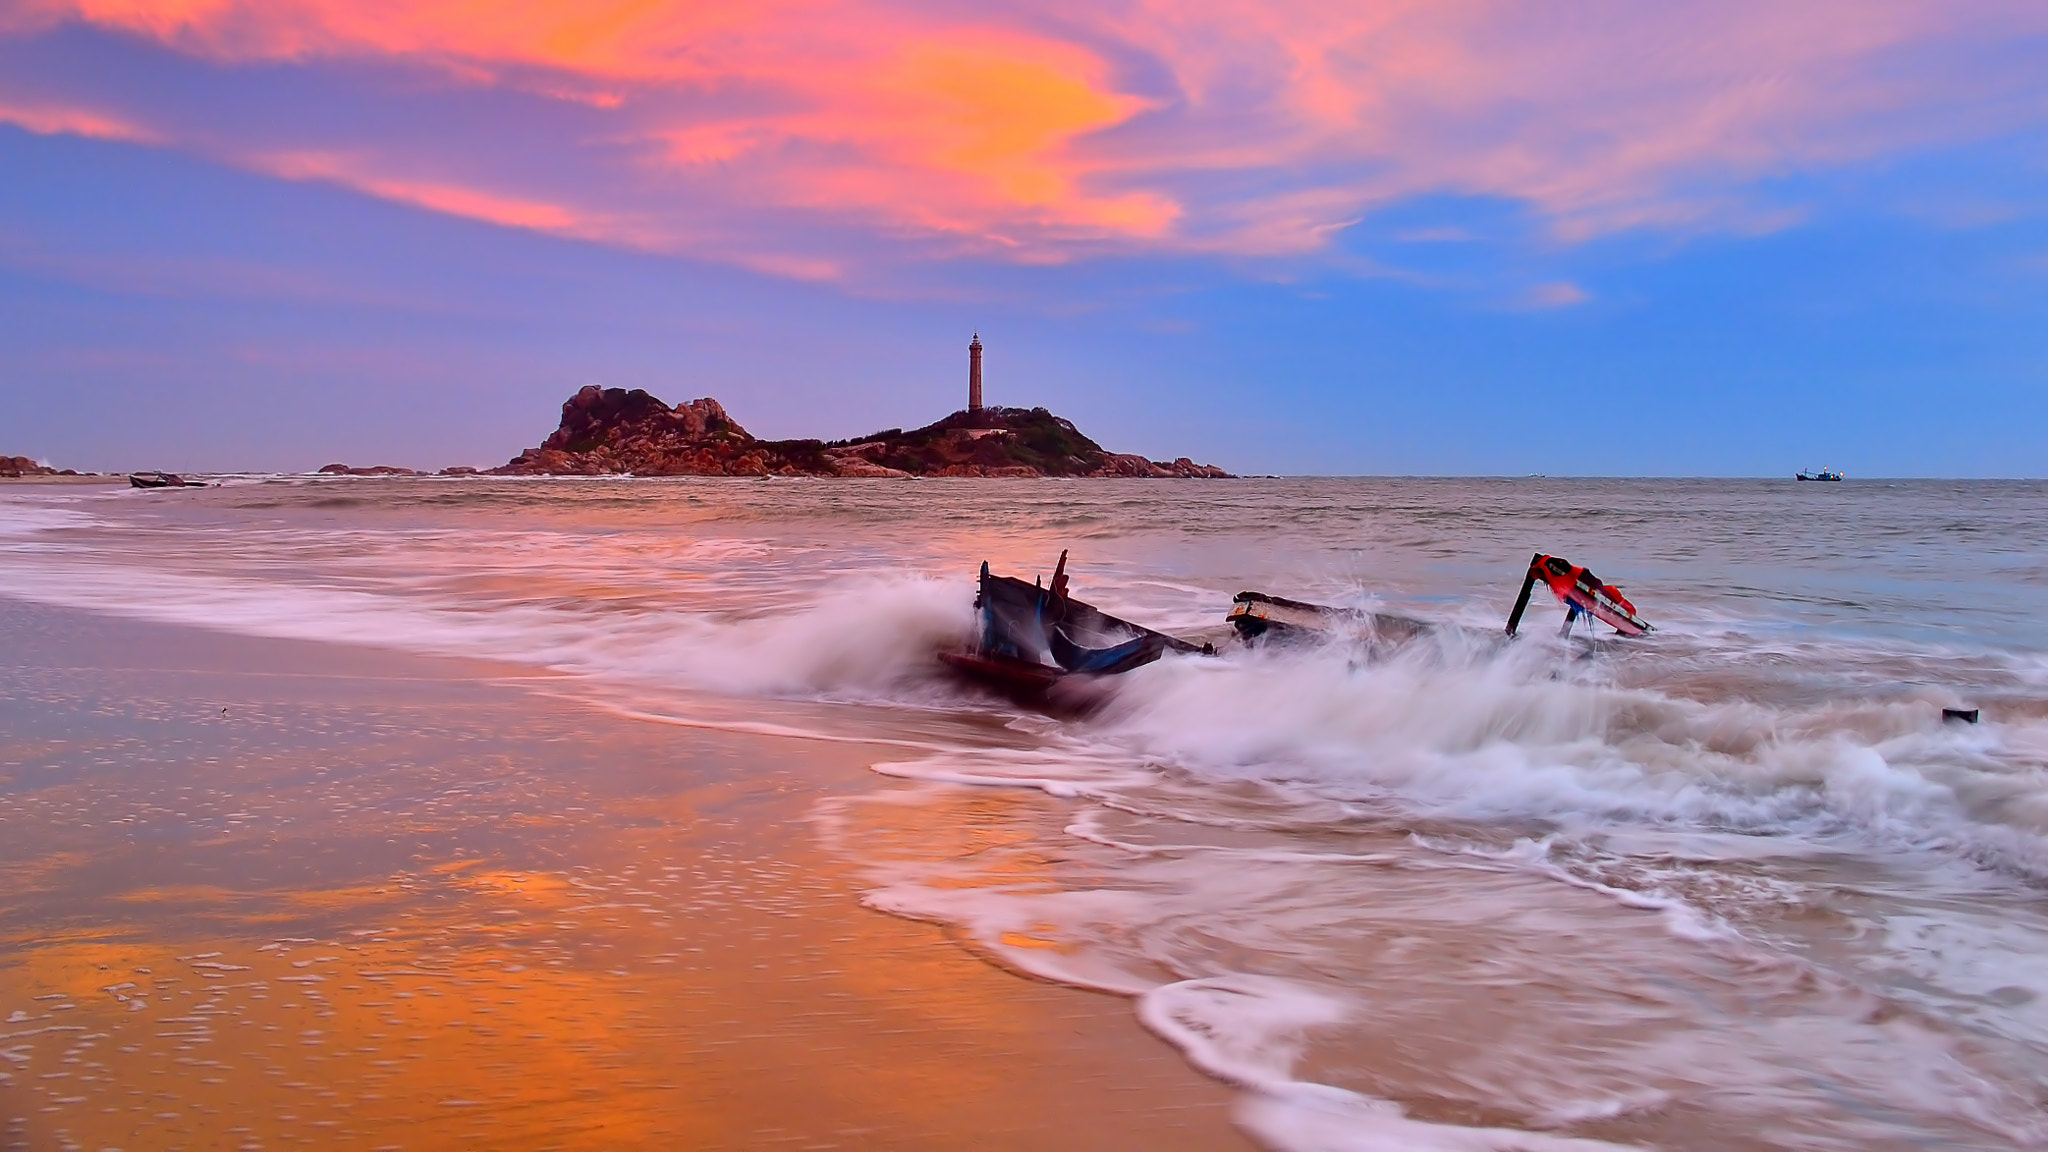 Photograph Sunset over Kega's lighthouse by Duc Vien on 500px